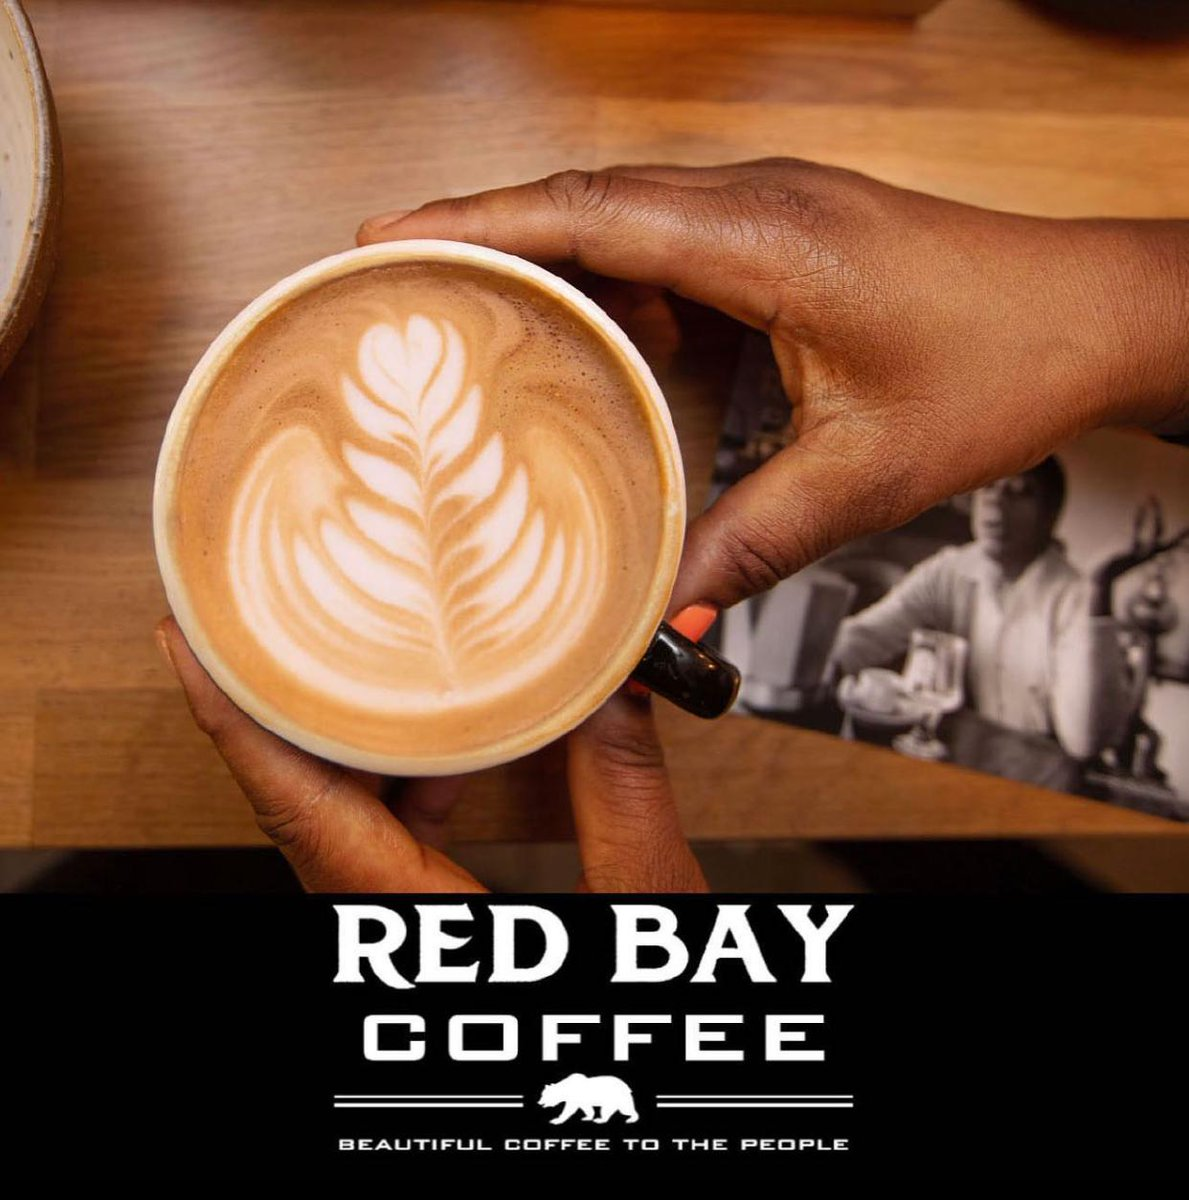 Join the A's and @mechanicsbank in supporting local businesses this weekend. We look forward to curling up with a cup of @redbaycoffee and a book from @waldenpond1973. #RootedInOakland https://t.co/UtfIJeplAS